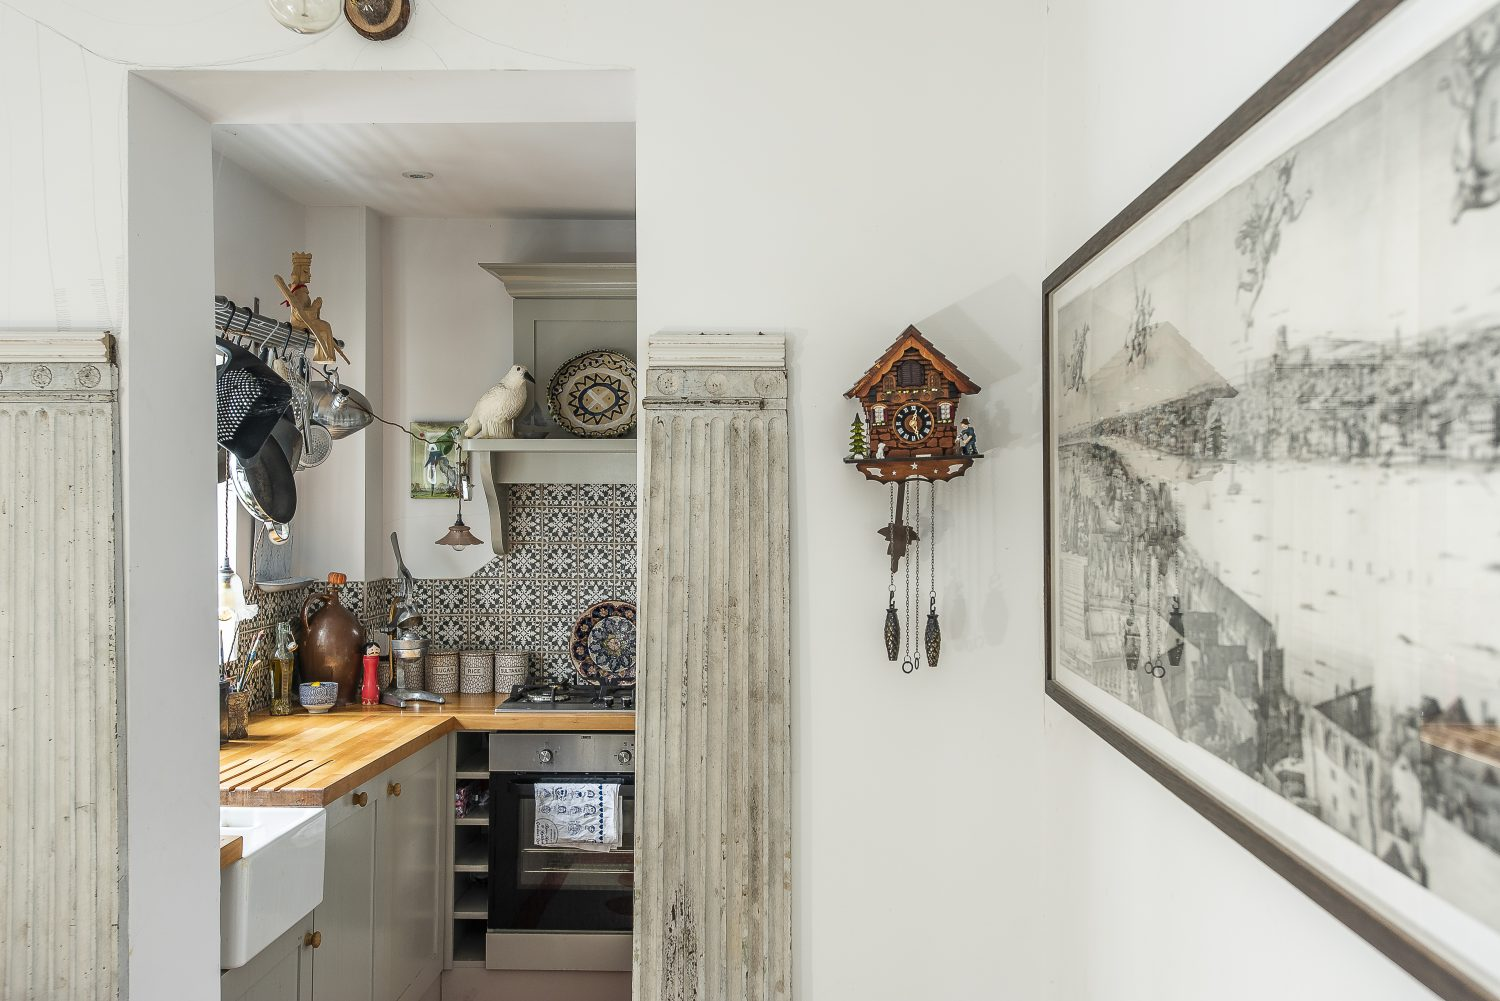 There are pillars on either side of the kitchen entrance – where Sally plans to add a theatrical curtain, currently drawn on the wall with pencil – and three working cuckoo clocks